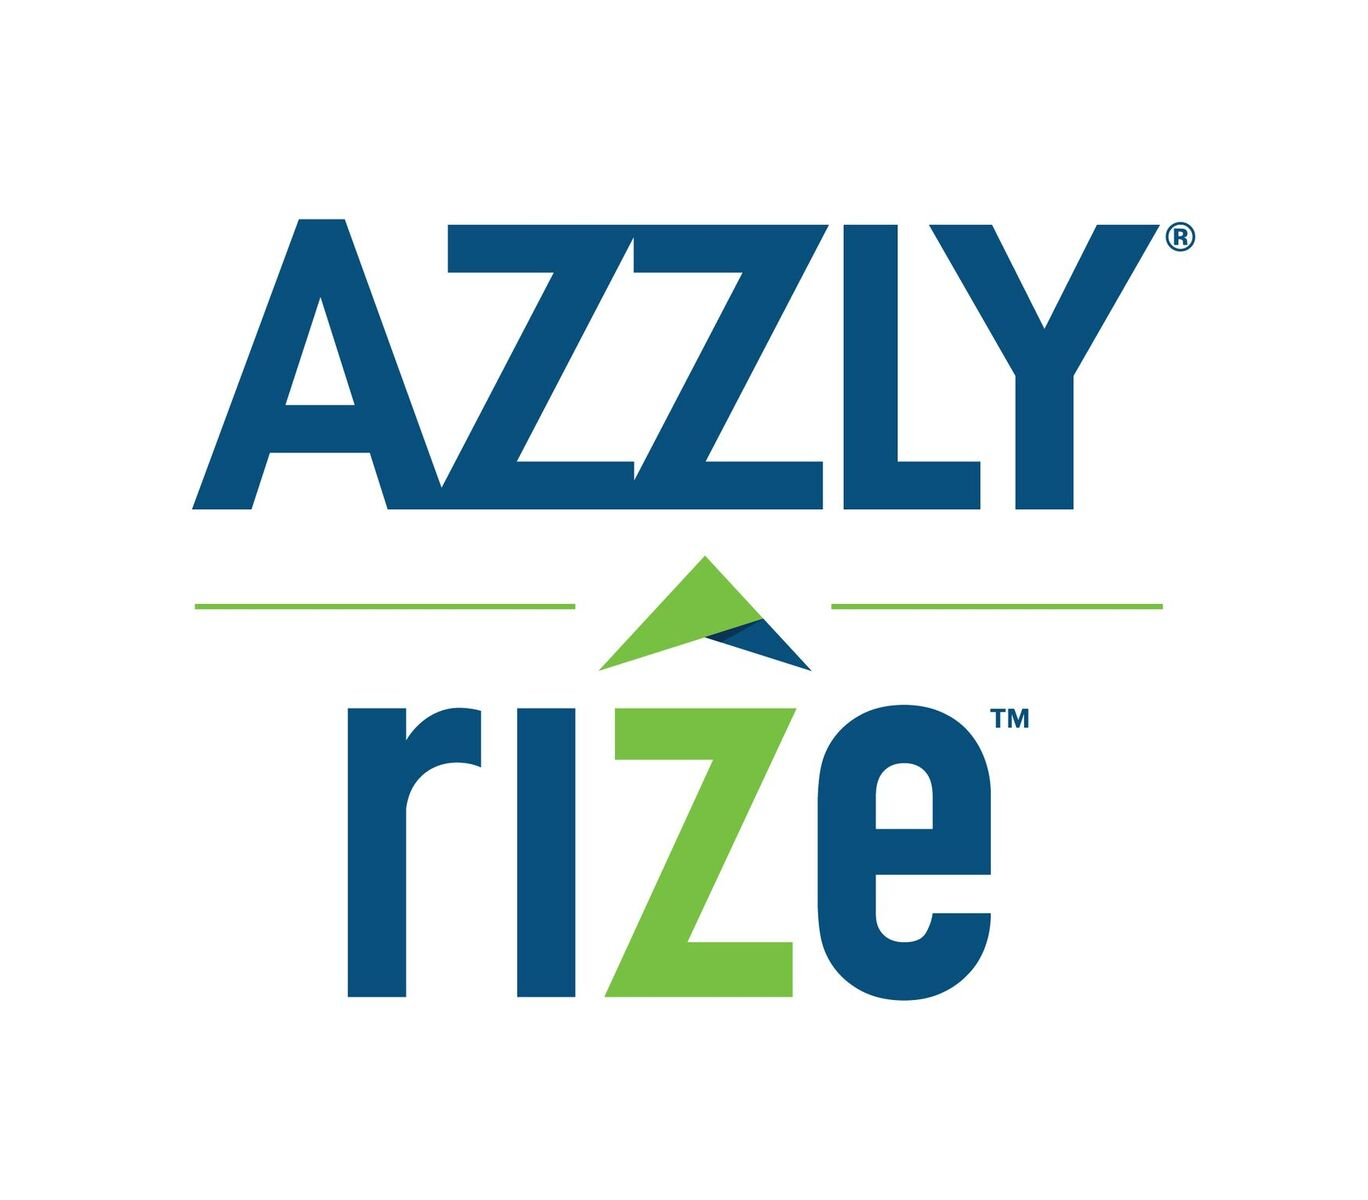 AZZLY Rize